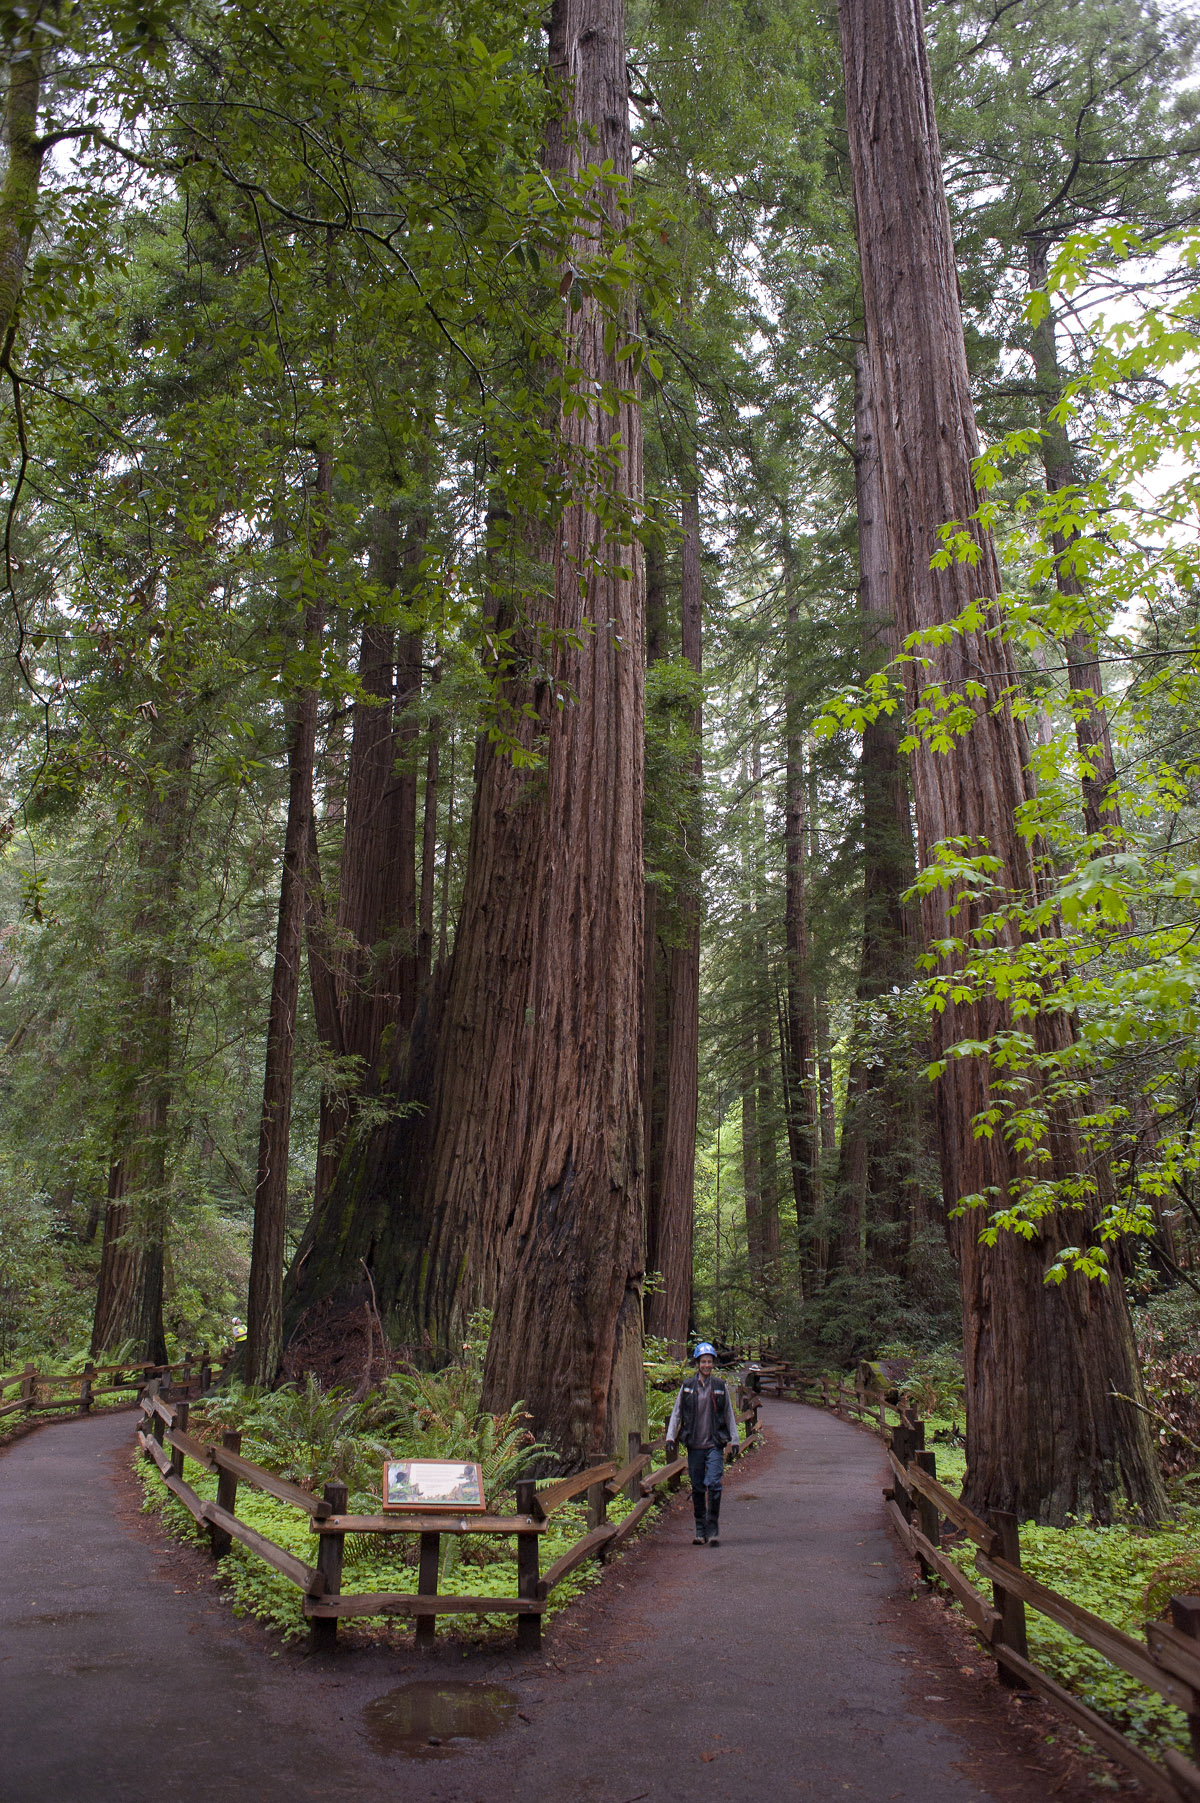 Cathedral Grove at Muir Woods National Monument. Photo credit: Tonatiuh Trejo-Cantwell